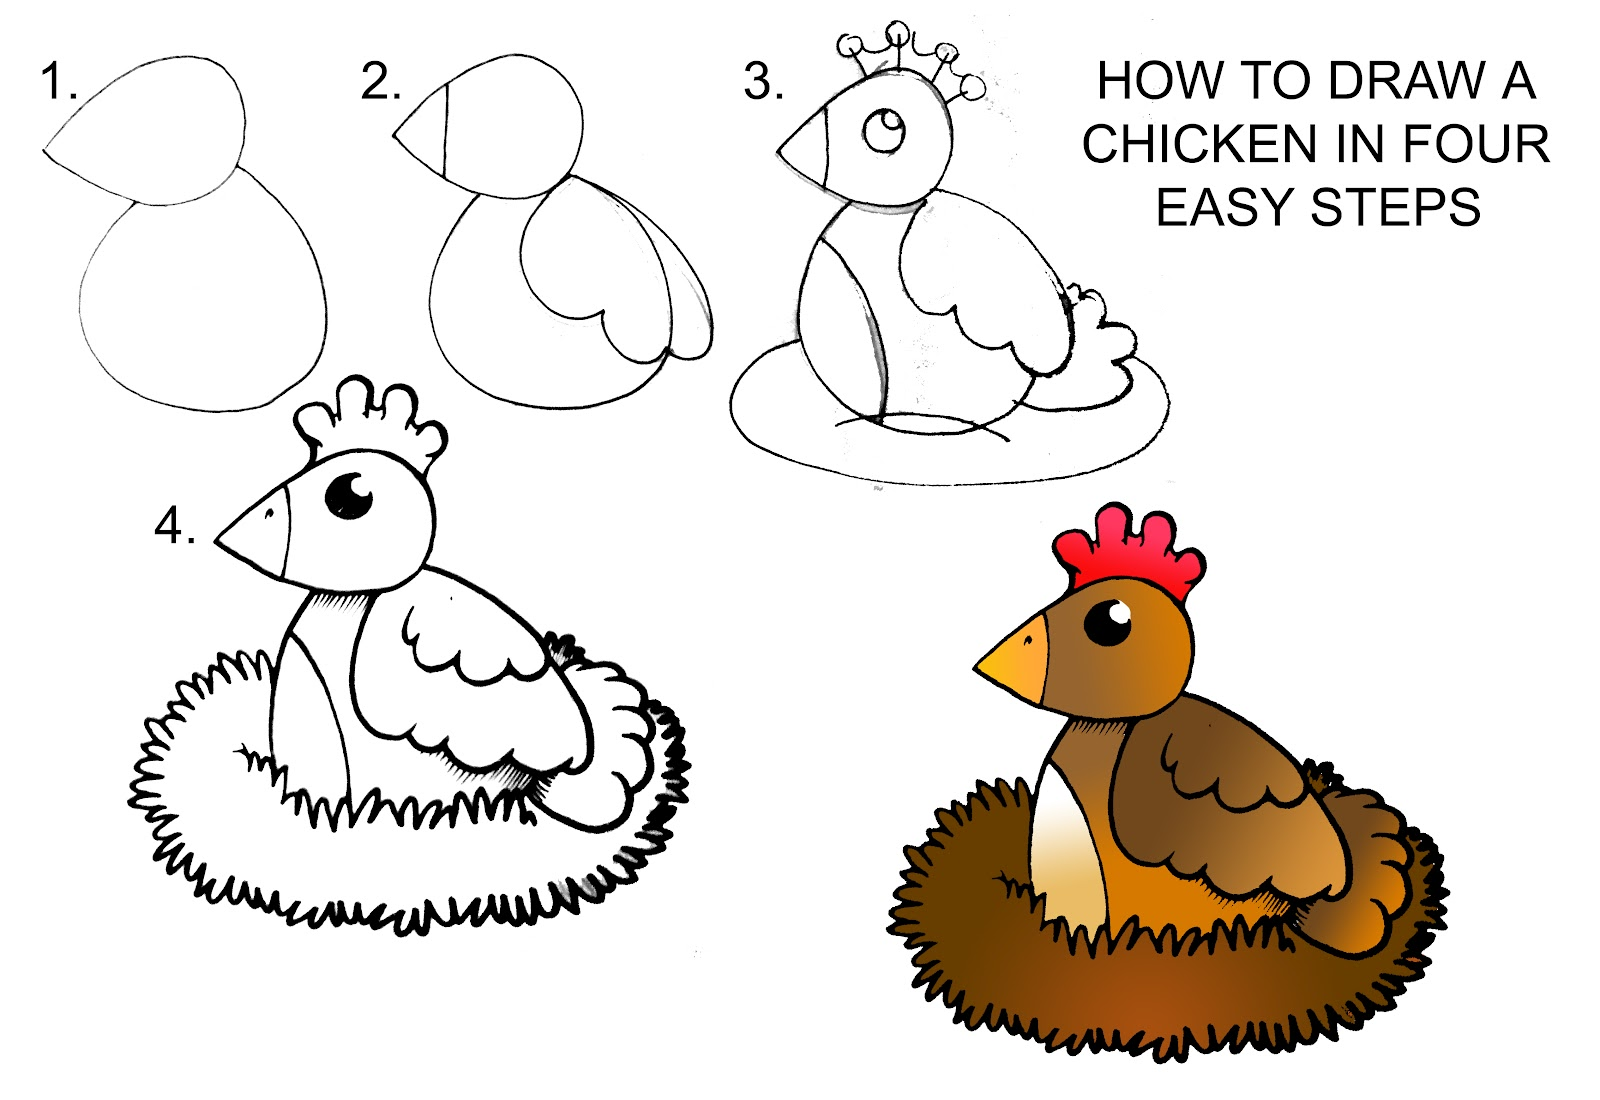 Uncategorized How To Draw A Chicken Step By Step how to draw a chicken step by daryl hobson artwork step